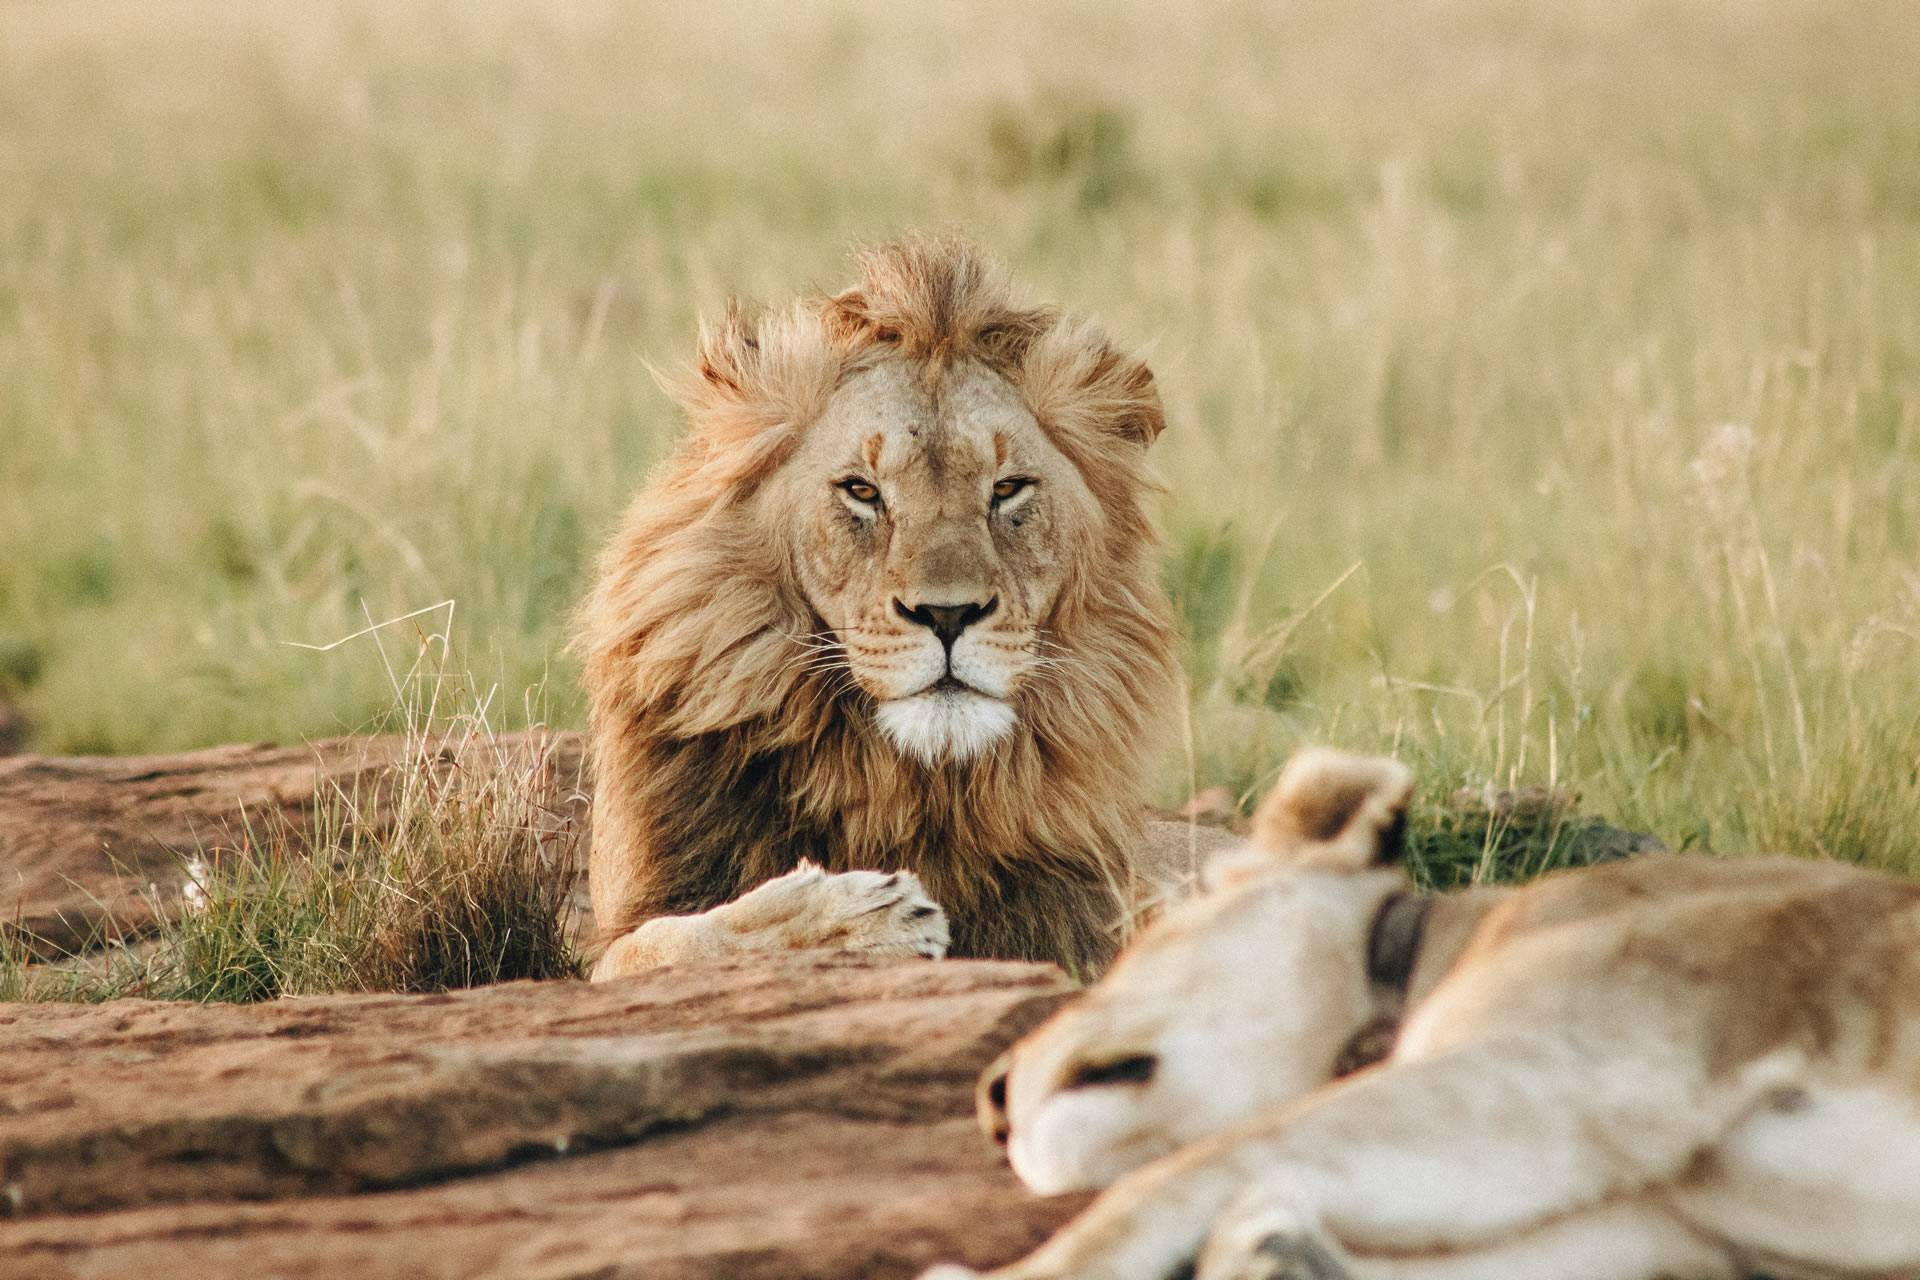 Explore our Featured African Safari Holidays